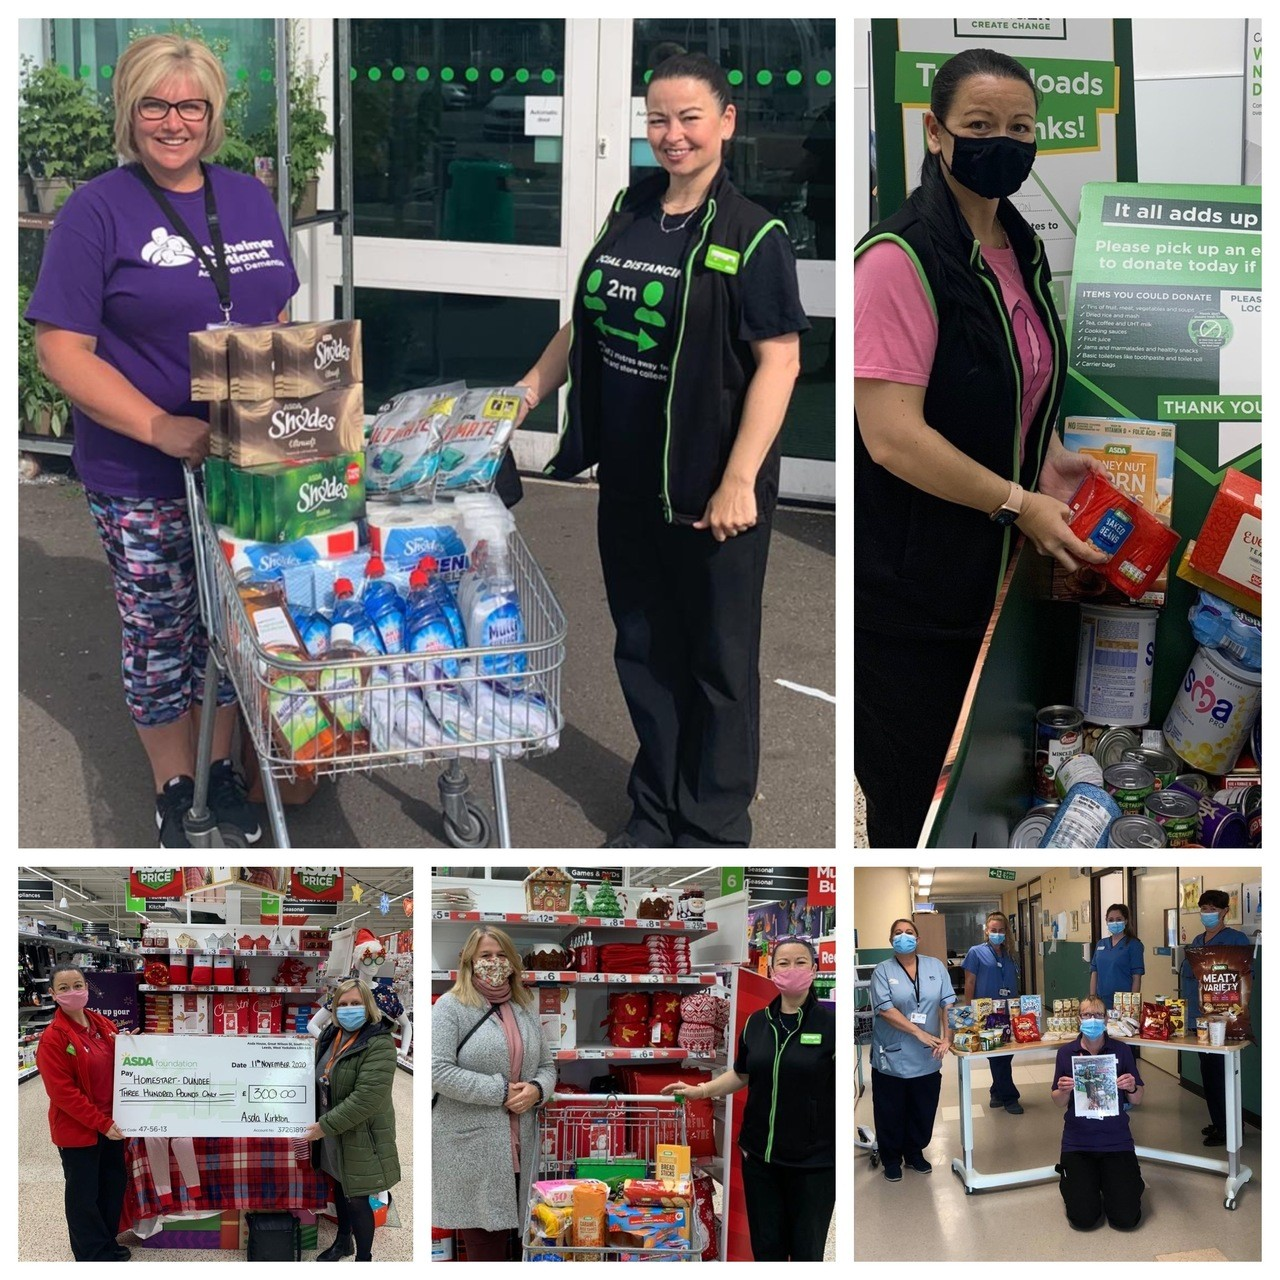 Grants of £17,353 given to groups and schools in the community since start of pandemic | Asda Dundee Kirkton